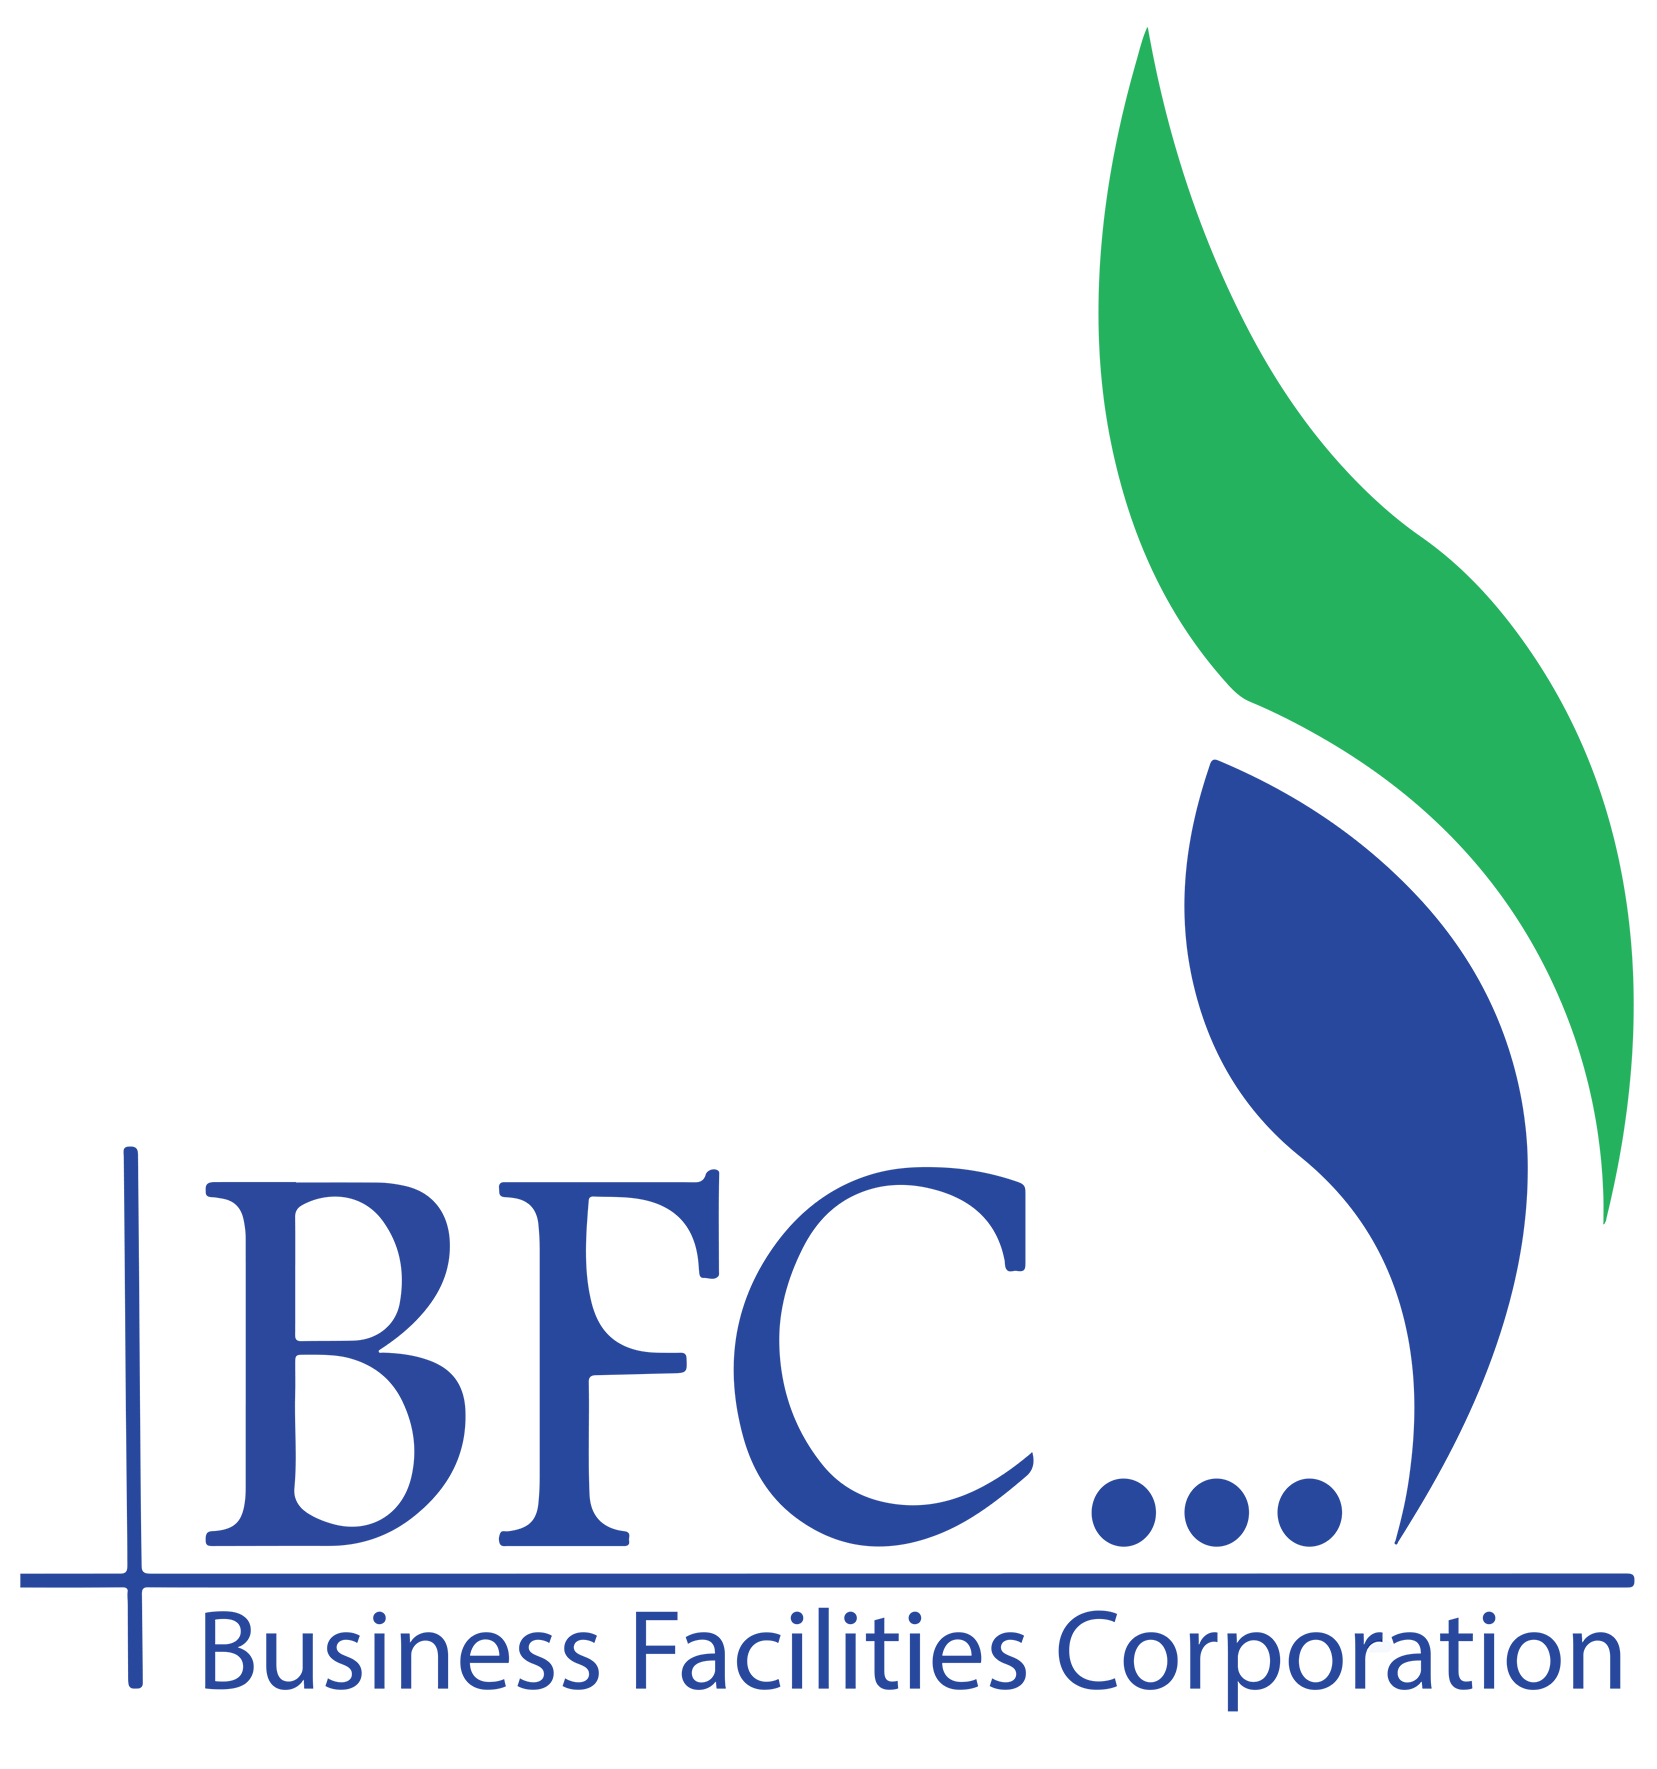 Business Facilities Corporation